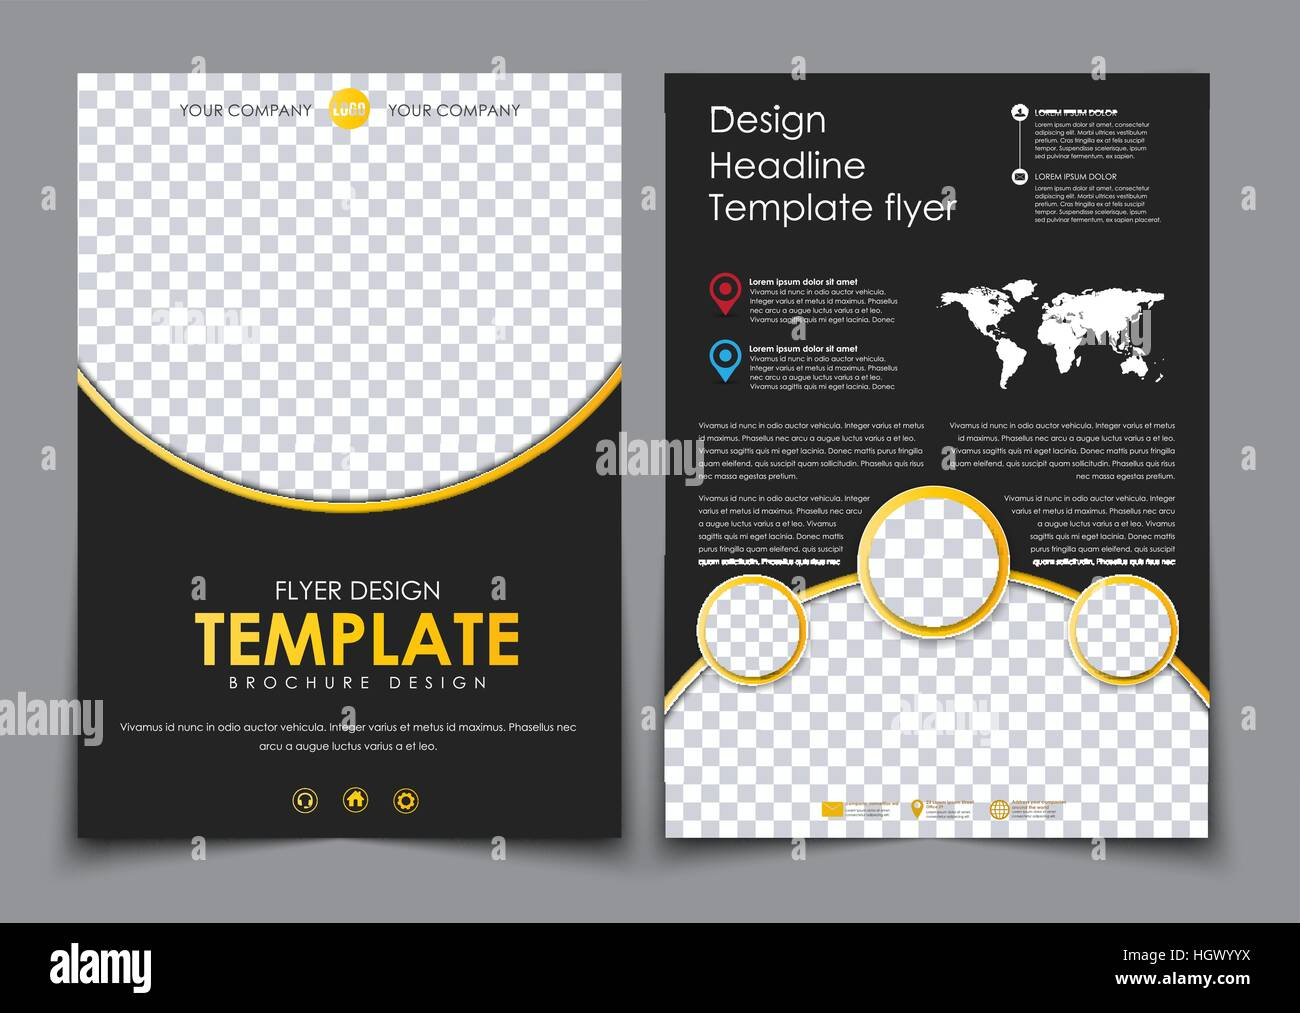 Design 2 pages of a4 black with yellow elements flyer template with design 2 pages of a4 black with yellow elements flyer template with space for photos and qr code world map and contact information vector illustra saigontimesfo